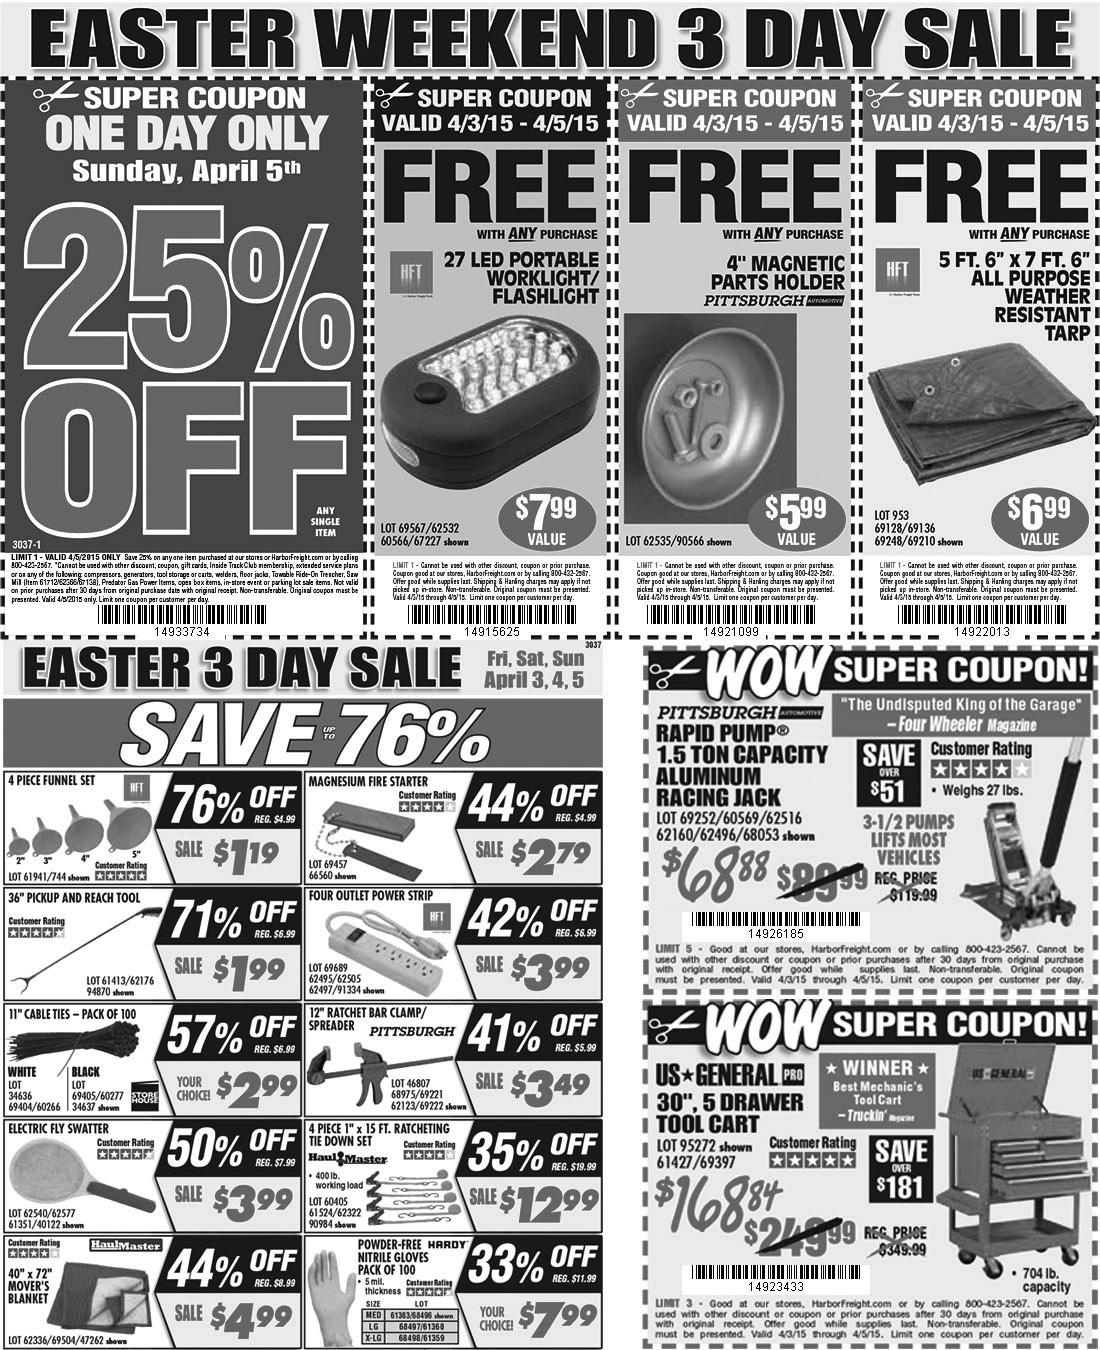 Harbor Freight Coupon January 2019 25% off a single item & more at Harbor Freight Tools, or online via promo code 14933734